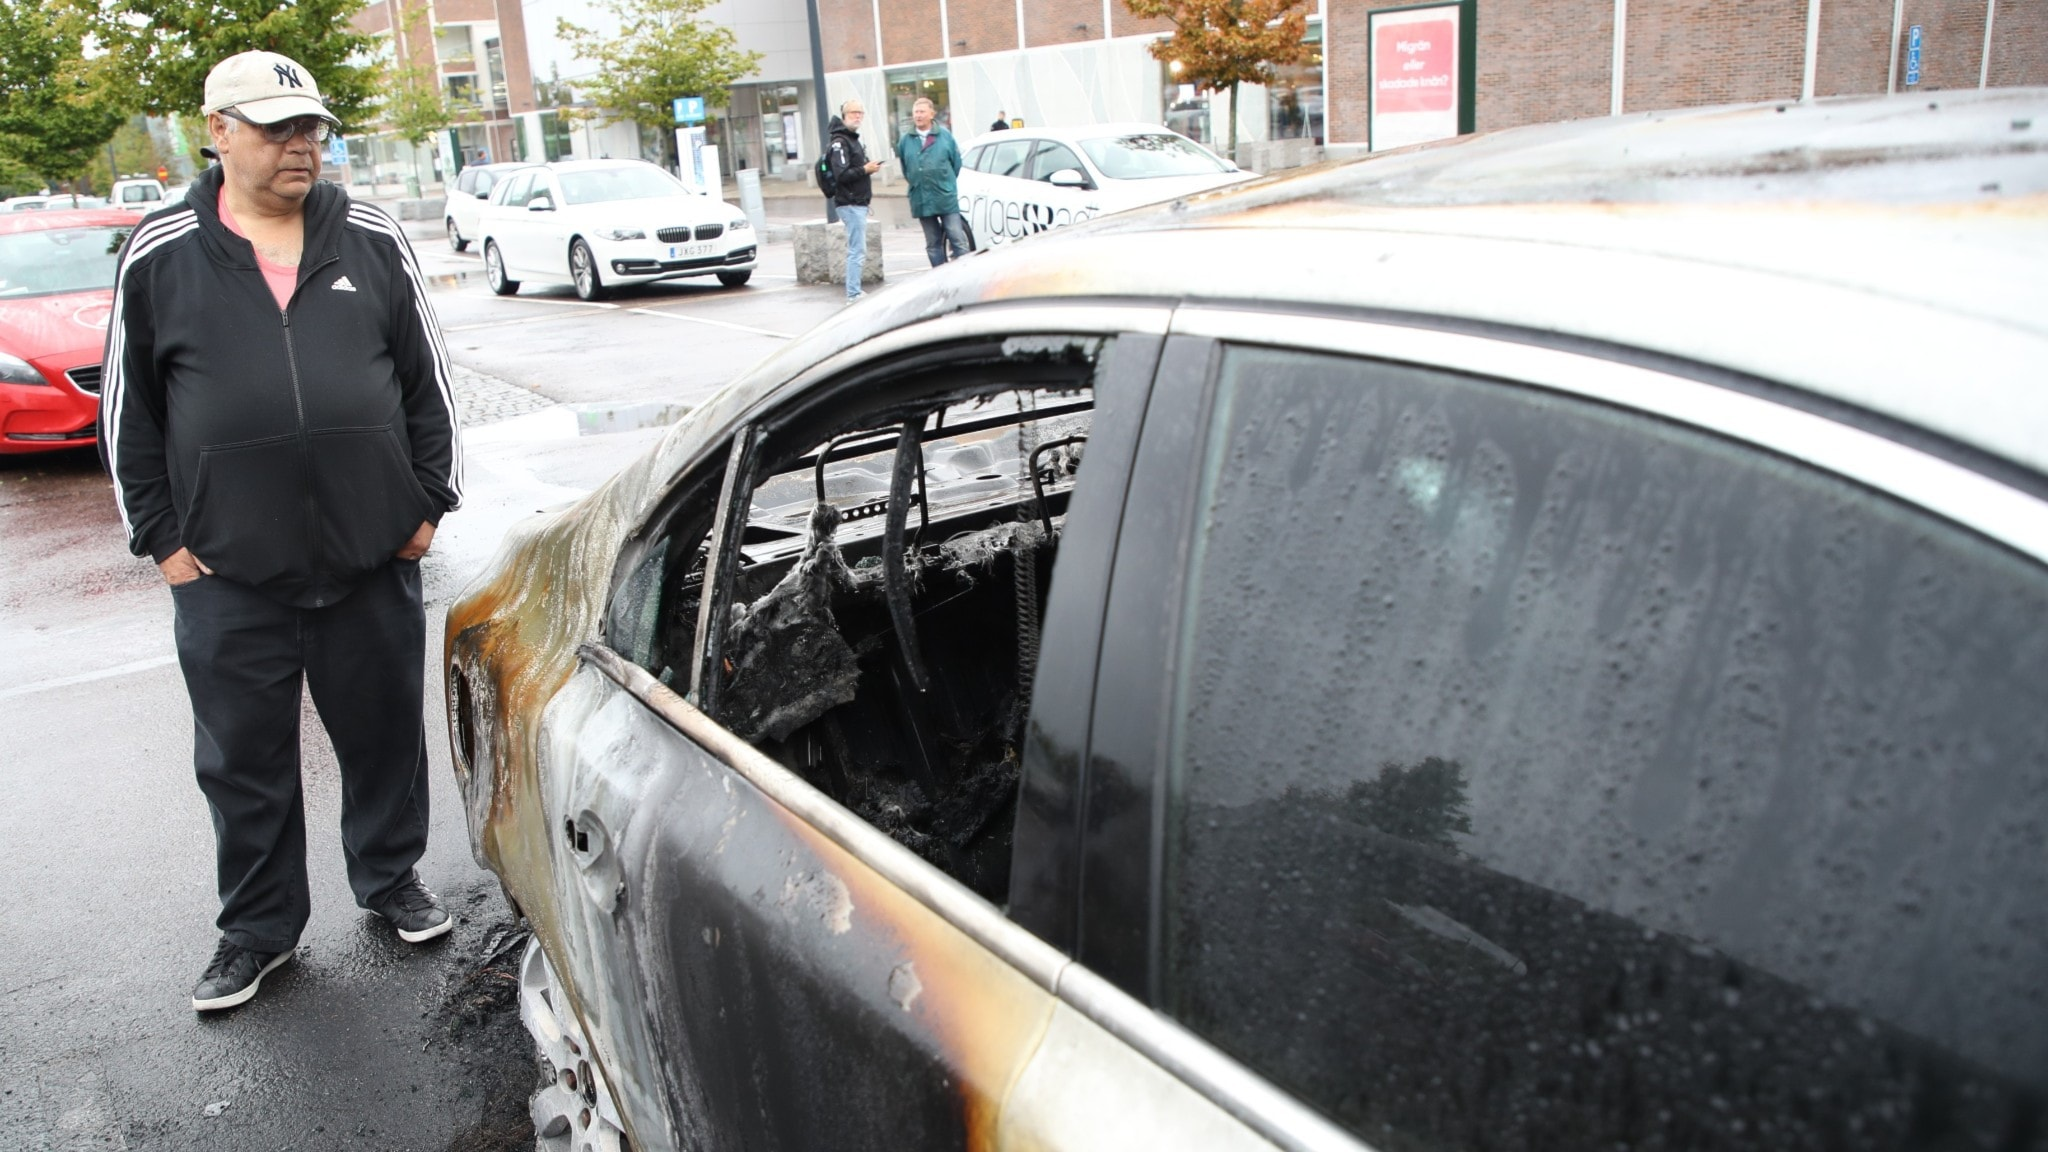 A man standing next to the charred remains of a car.